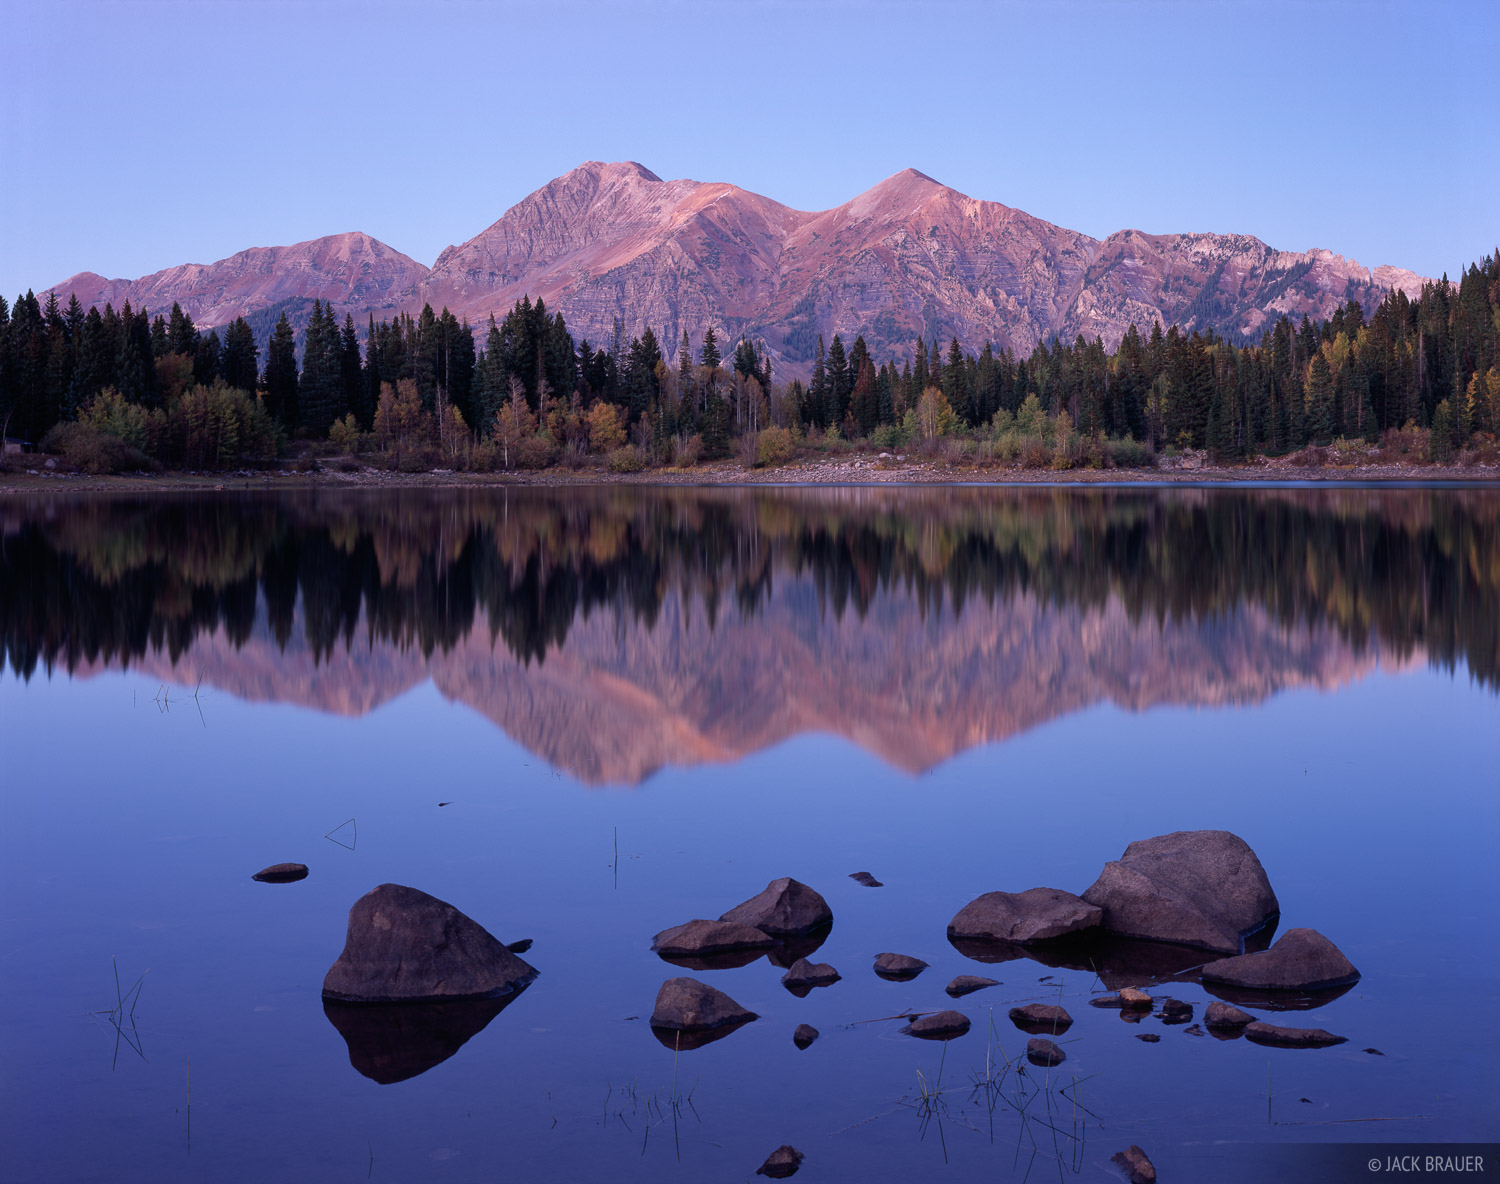 Mt. Owen, 13,058 ft., and Ruby Peak, 12,644 ft., reflected in Lost Lake Slough near Kebler Pass - September.